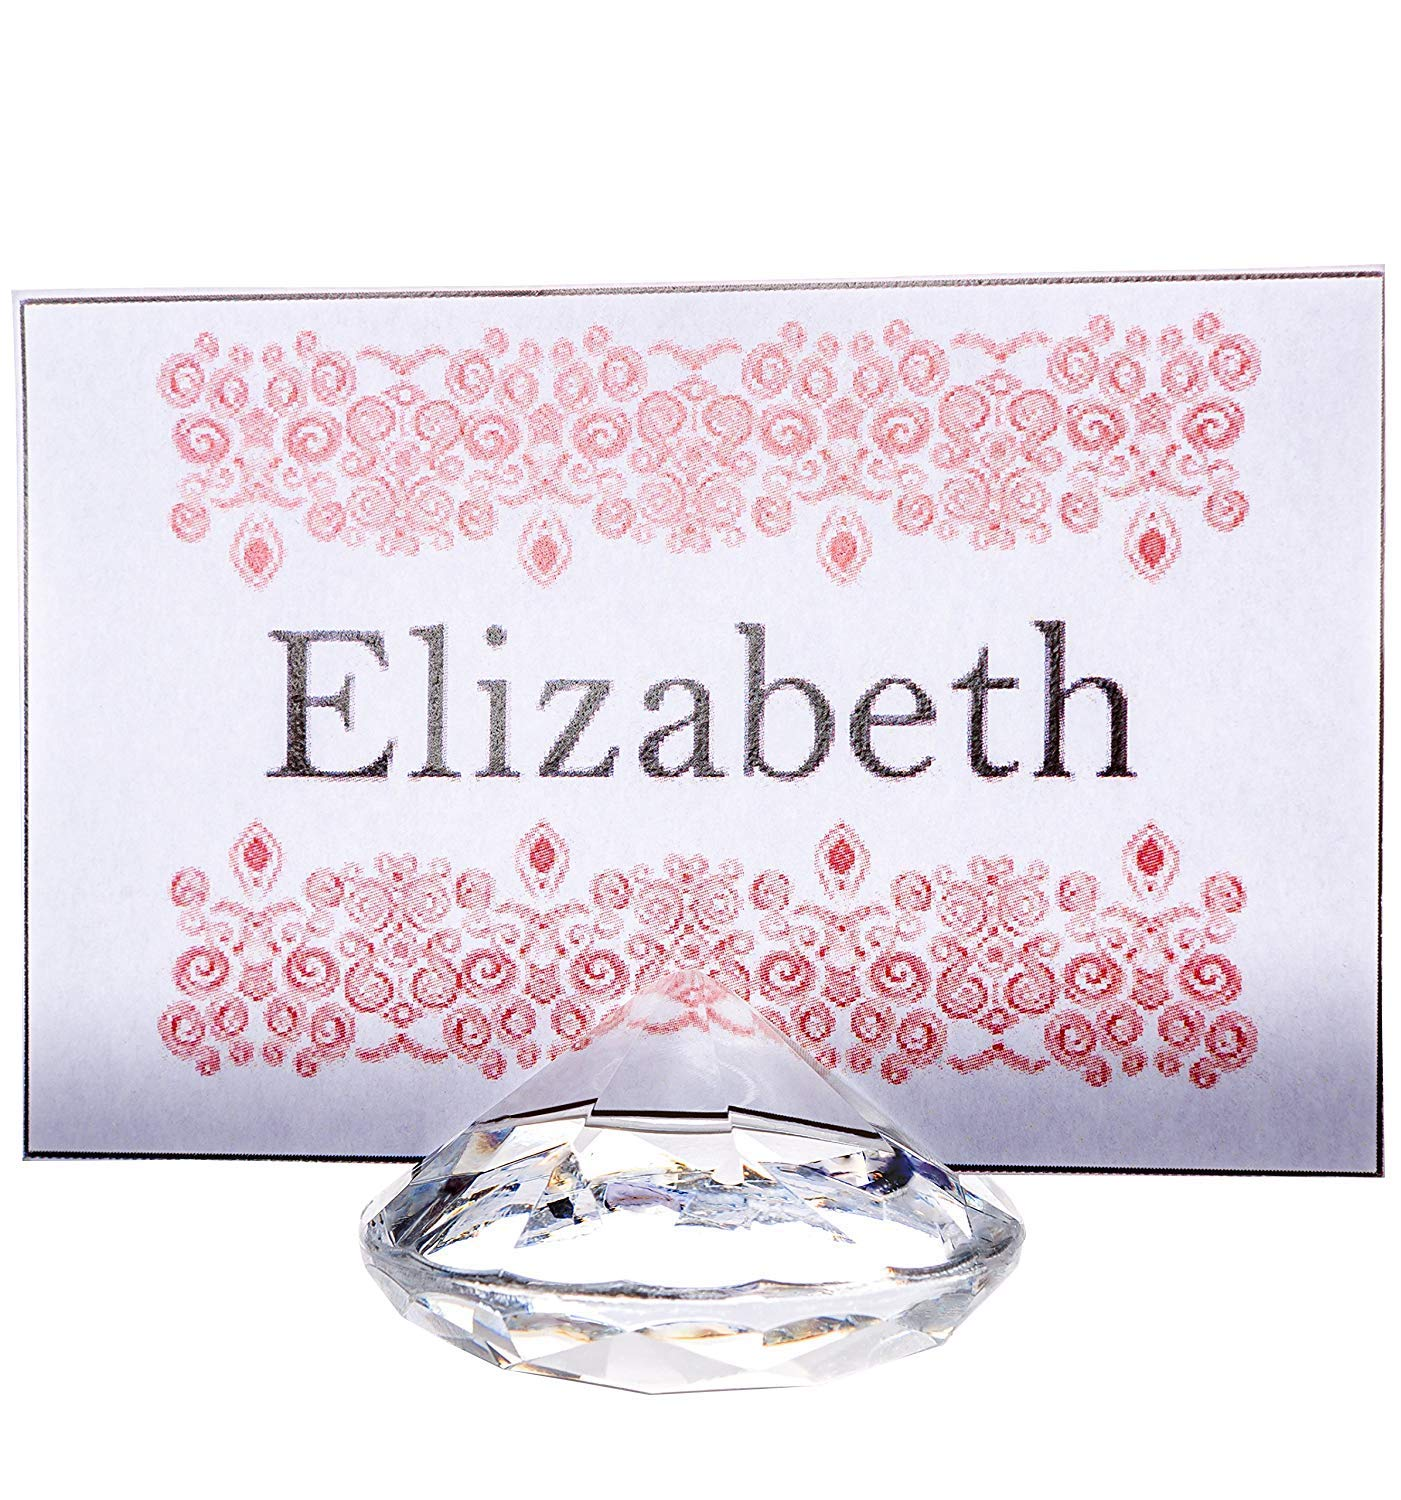 CLEAR Diamond Table Number & Place Card Holder, Set of 20. Sturdy Acrylic Name Card Holders for Wedding & Party Table Decorations